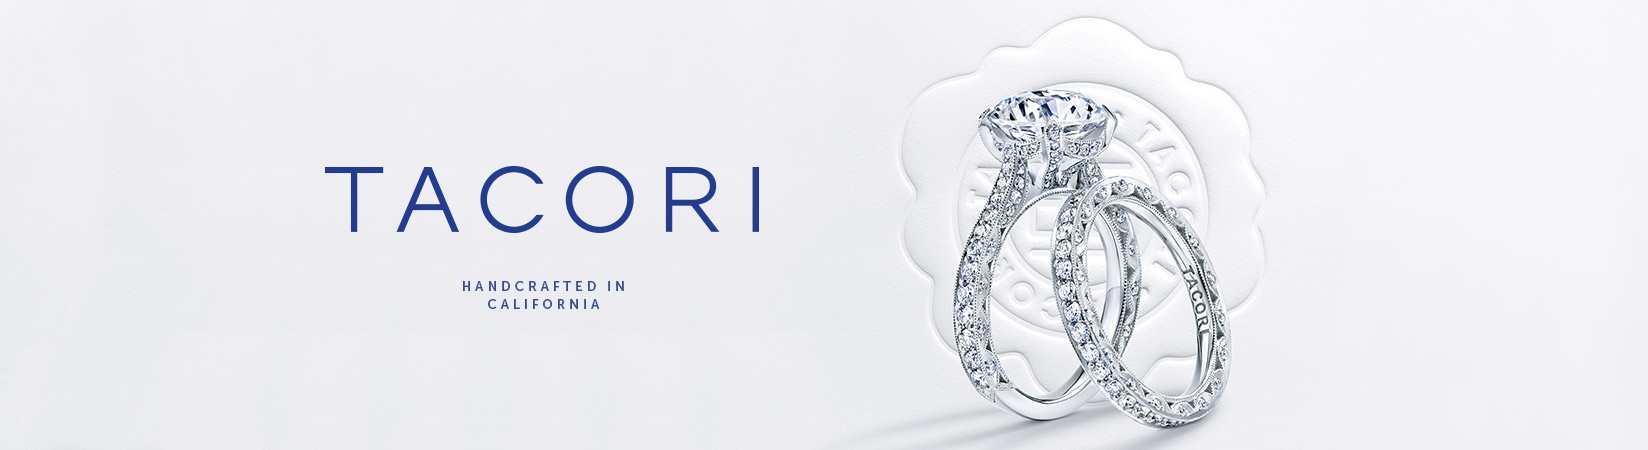 Tacori | Handcrafted in California